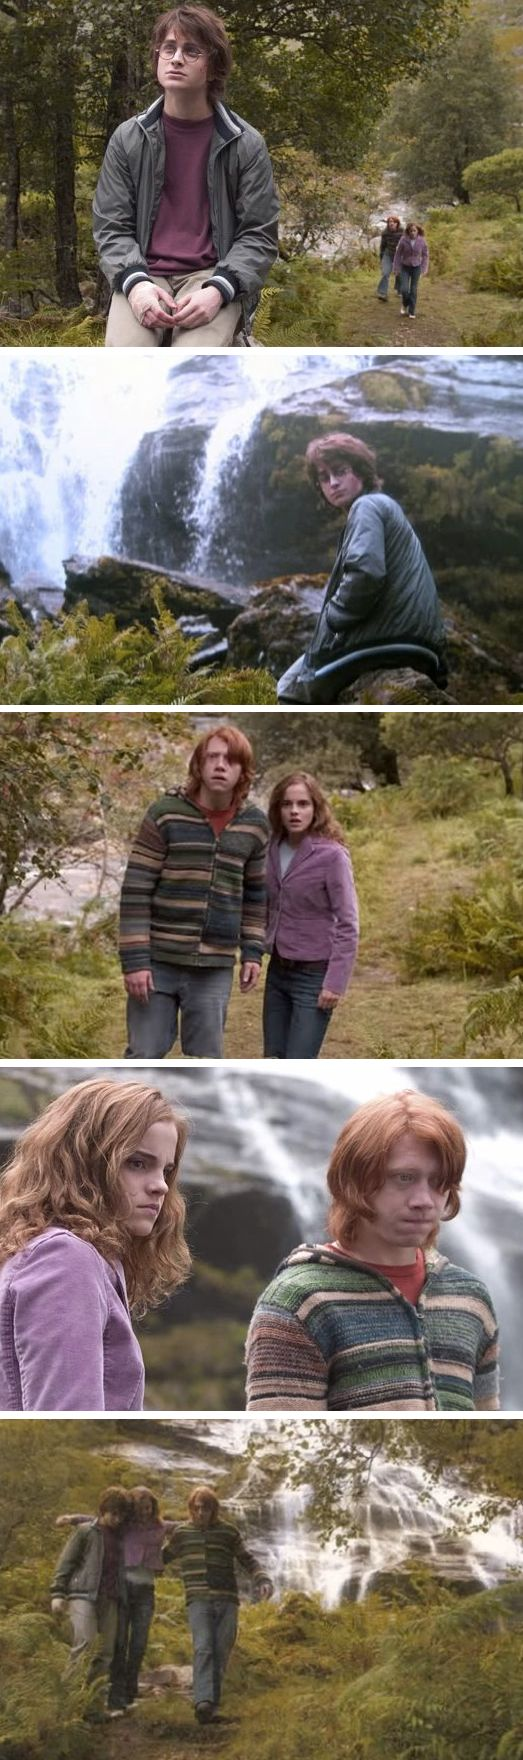 Harry Potter Deleted Scenes: Harry Potter and the Goblet of Fire | Ron and Hermione find Harry and comfort him after the Triwizard Tournament.